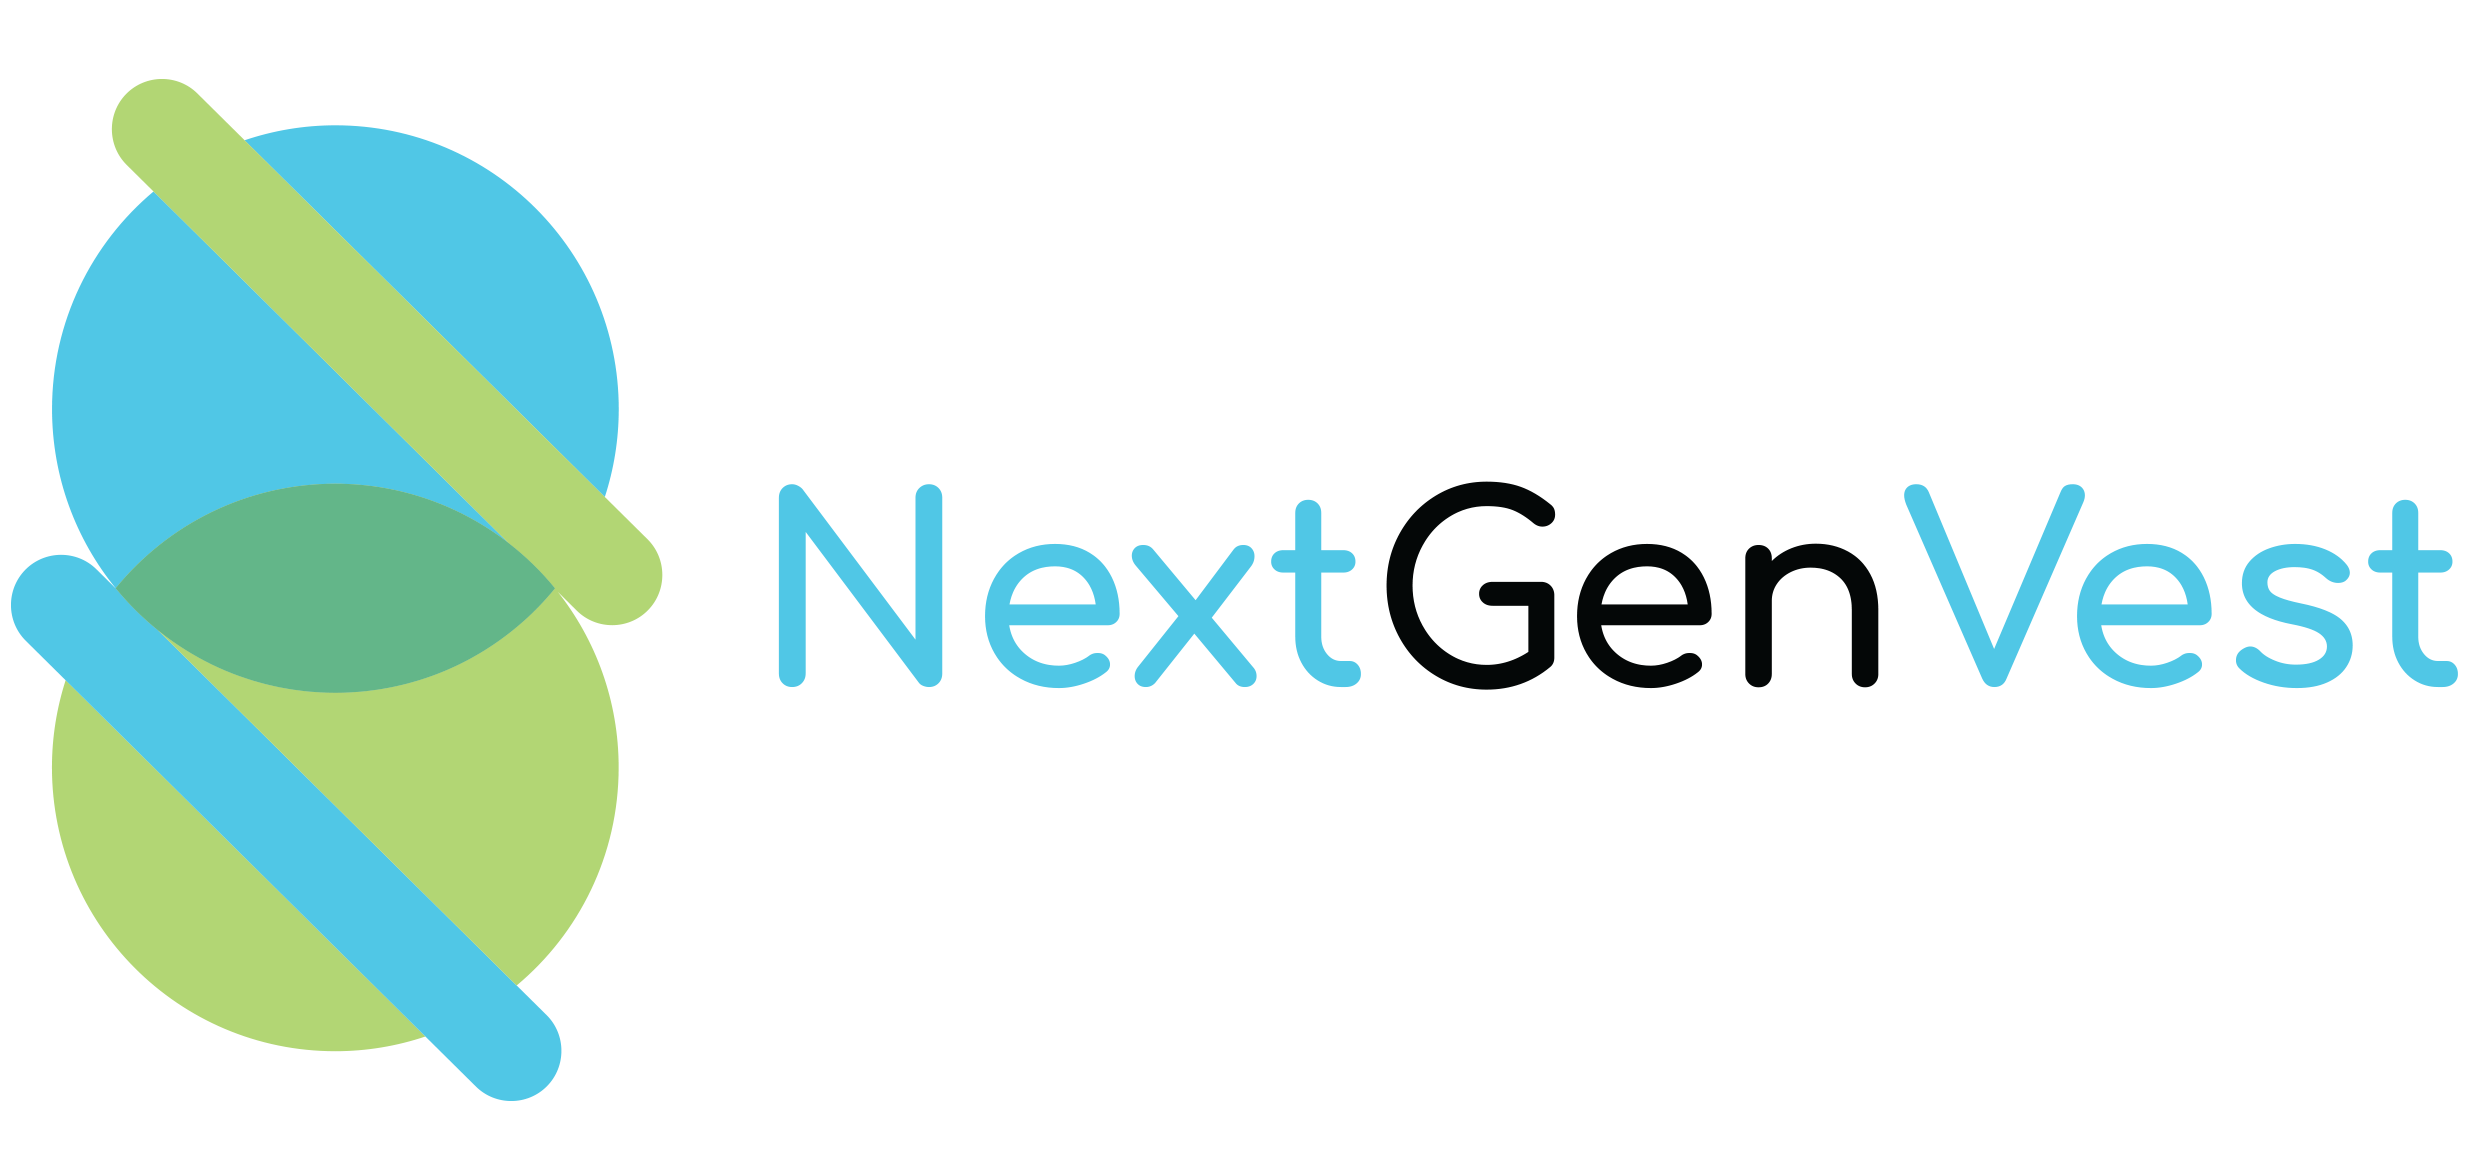 NextGenVest – Here to Guide Your Success